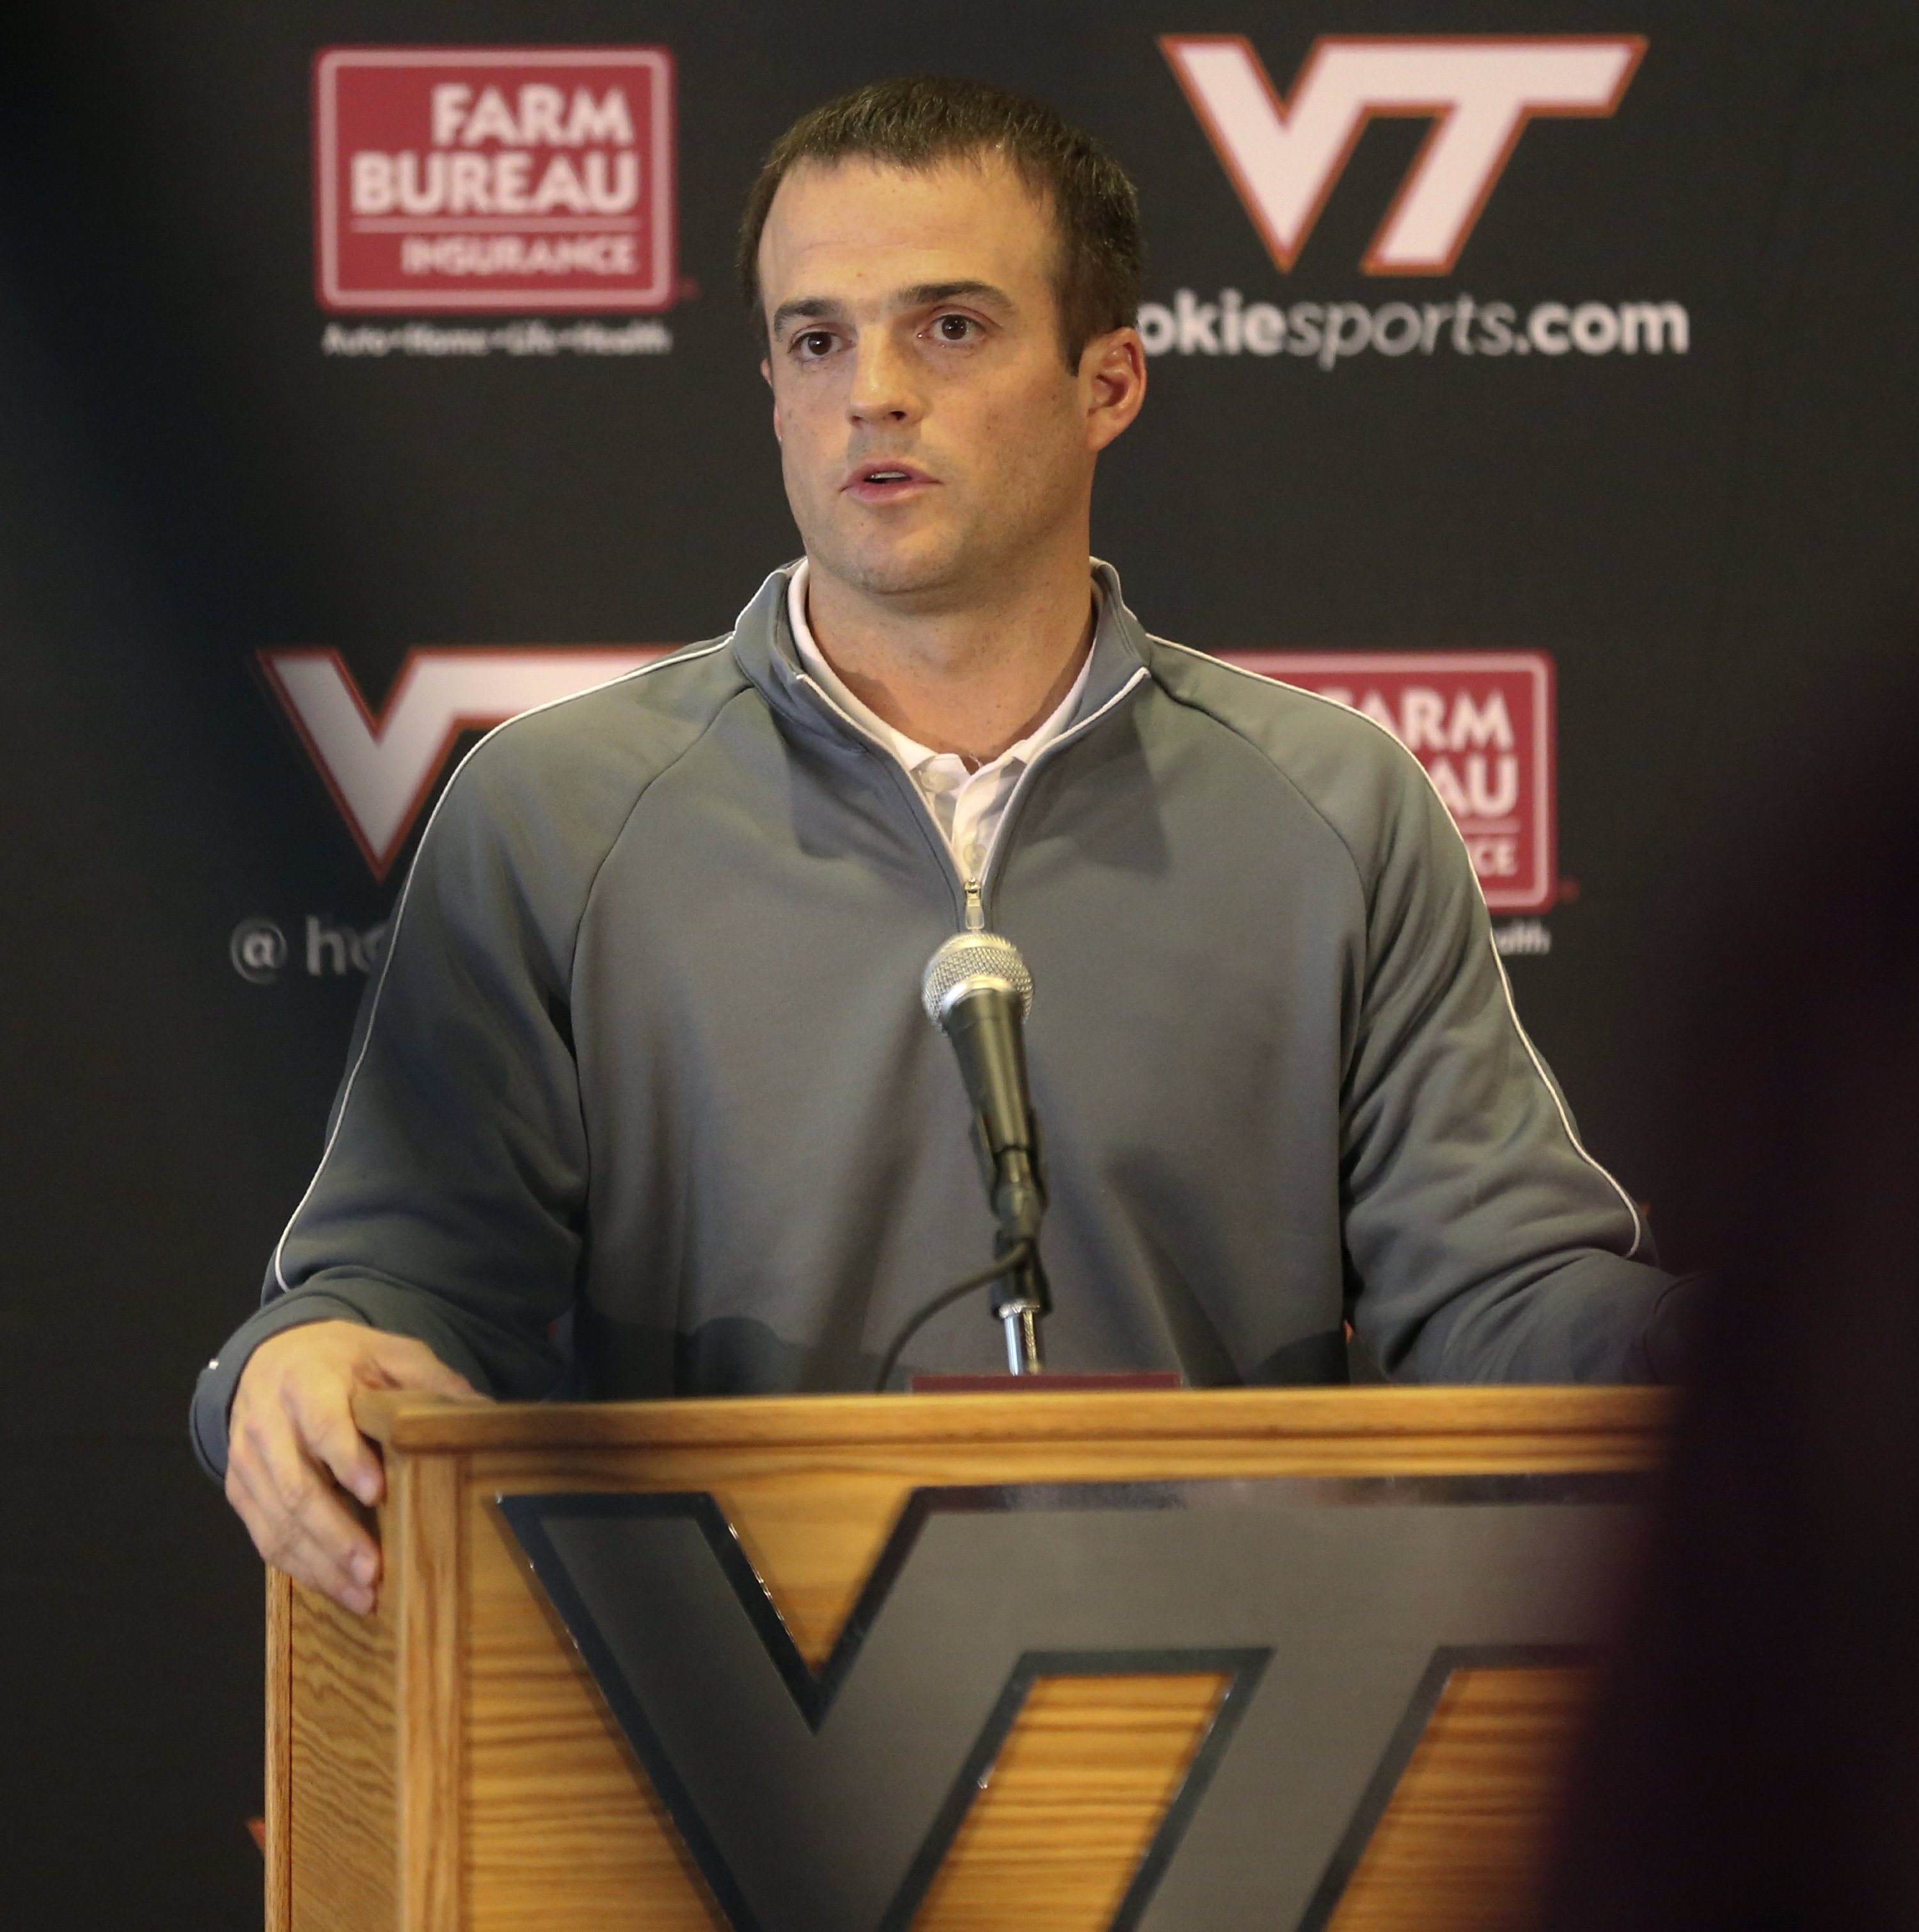 Shane Beamer, son of head coach Frank Beamer, and running backs coach speaks during a Pre-Bowl Media Conference on the Virginia Tech campus in Blacksburg, Va. Thursday, Dec. 10 2015. Virginia Tech is scheduled to play Tulsa in the Camping World Independen